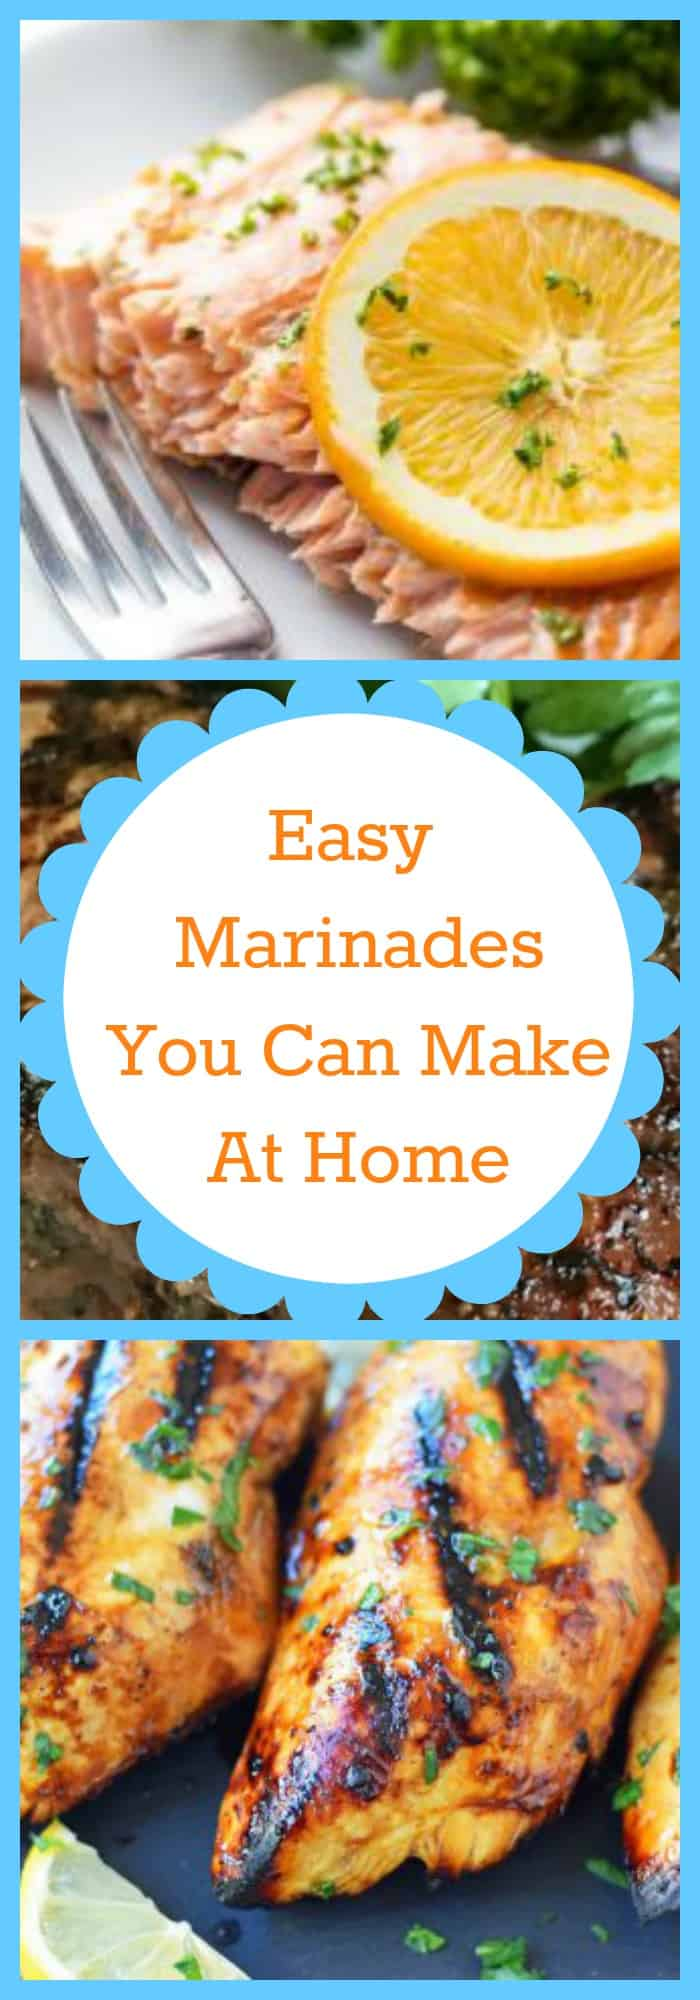 Easy Marinades You Can Make at Home